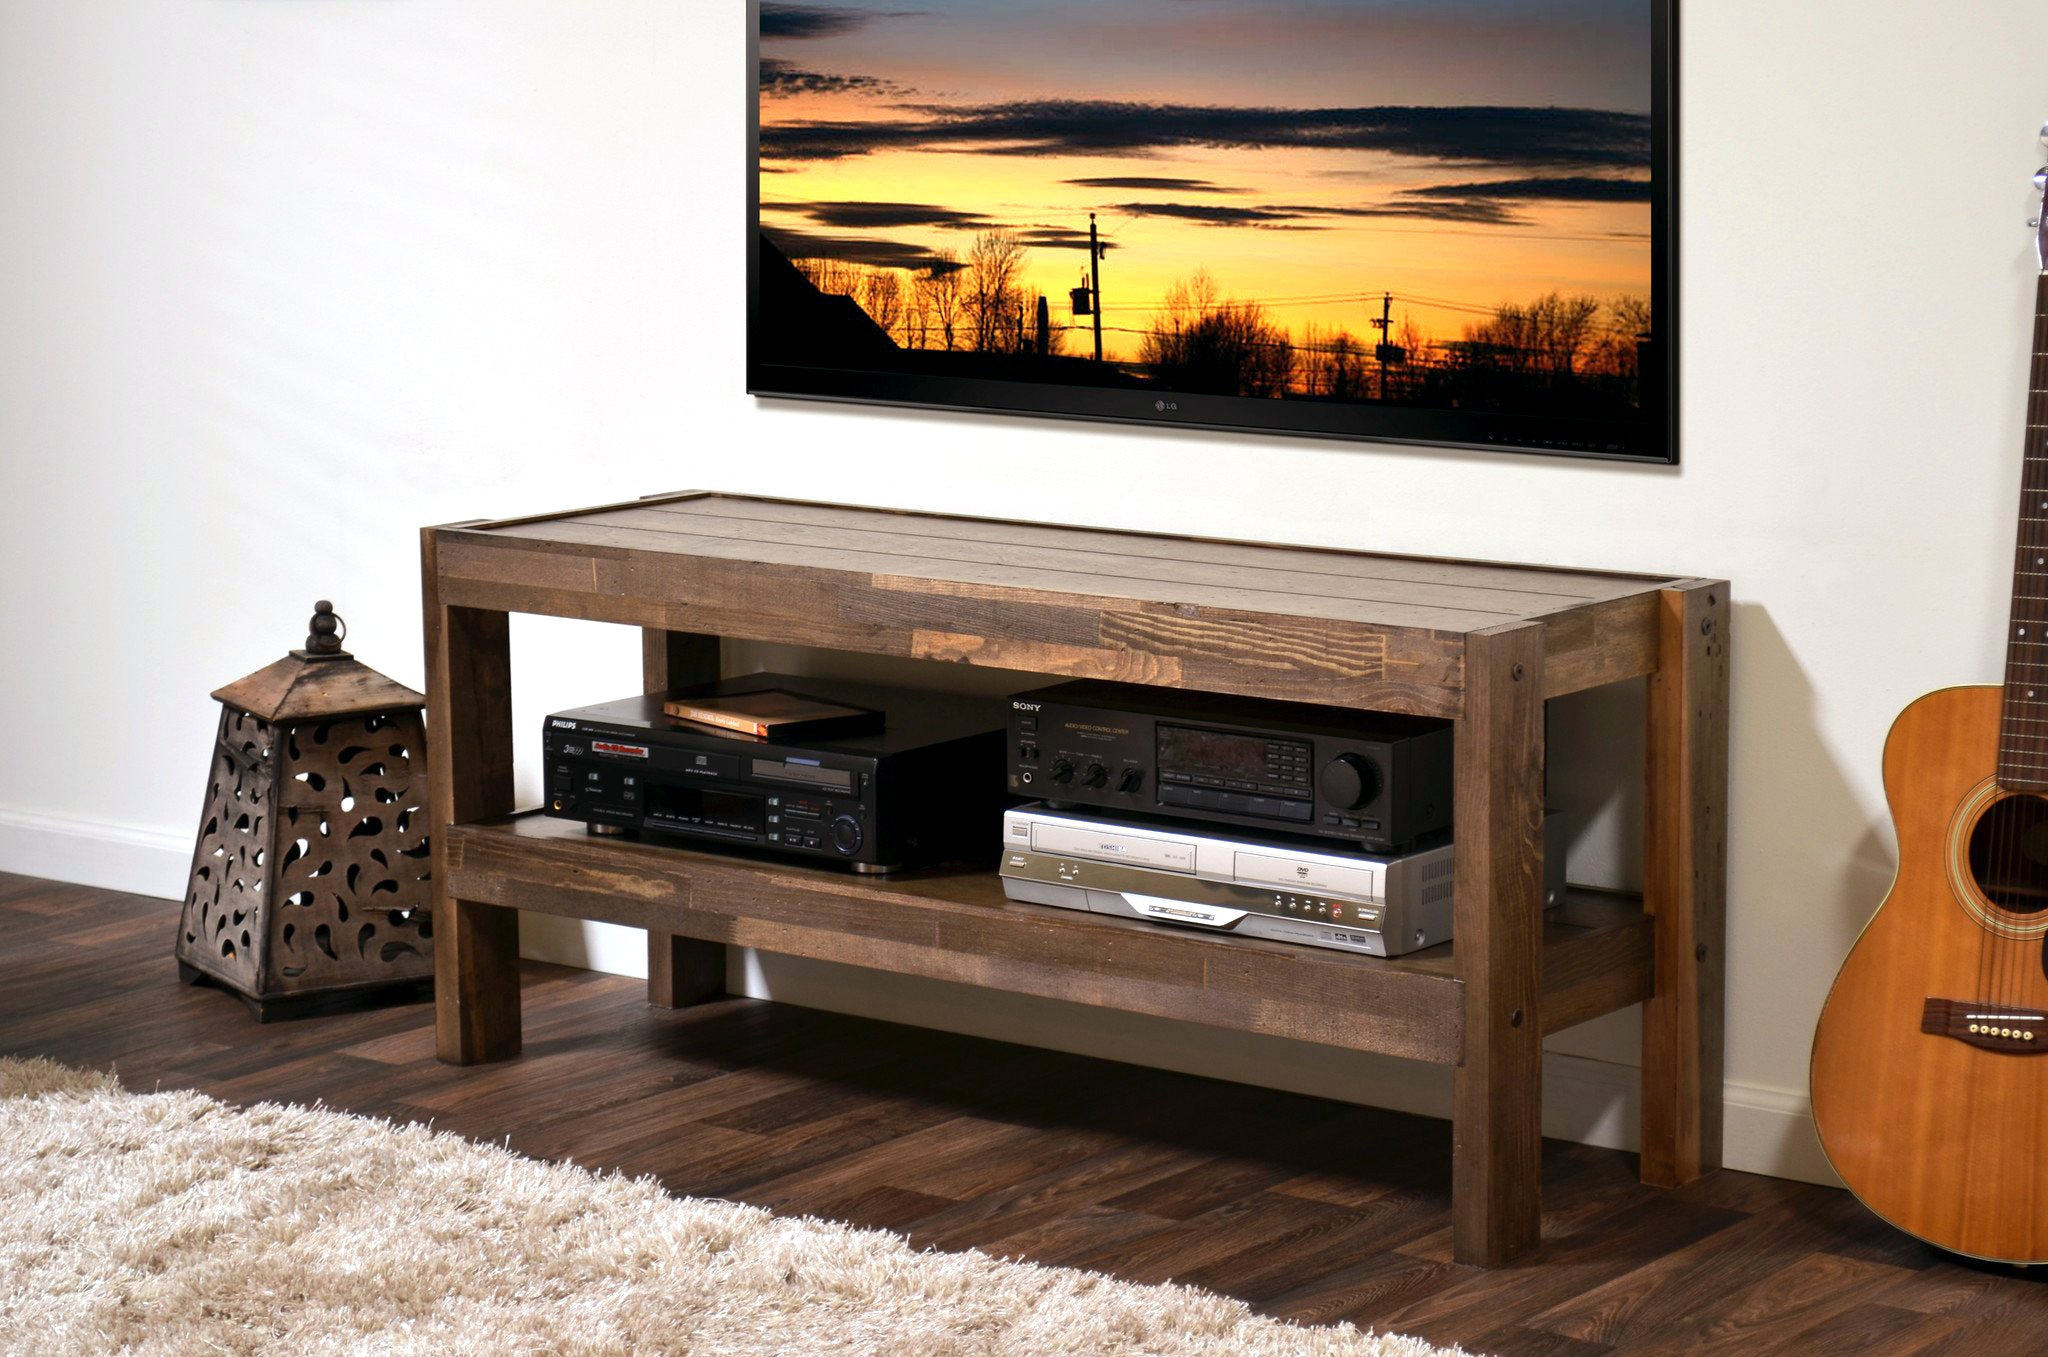 Rustic Reclaimed Barn Wood Style TV Stand - presEARTH Spice